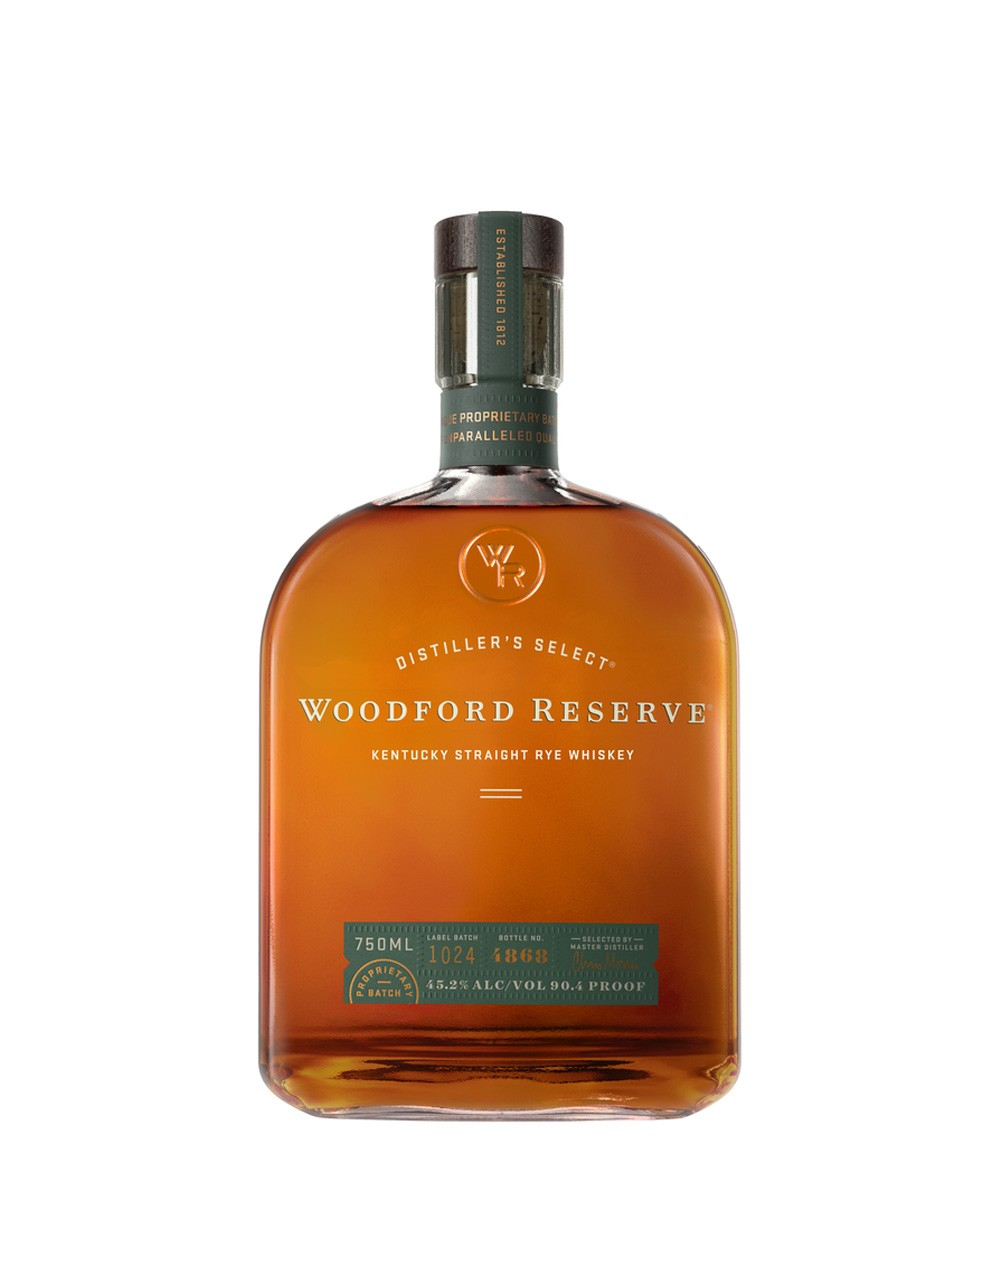 Woodford Reserve Kentucky Straight Rye Whiskey | Buy Online or Send as a Gift | ReserveBar